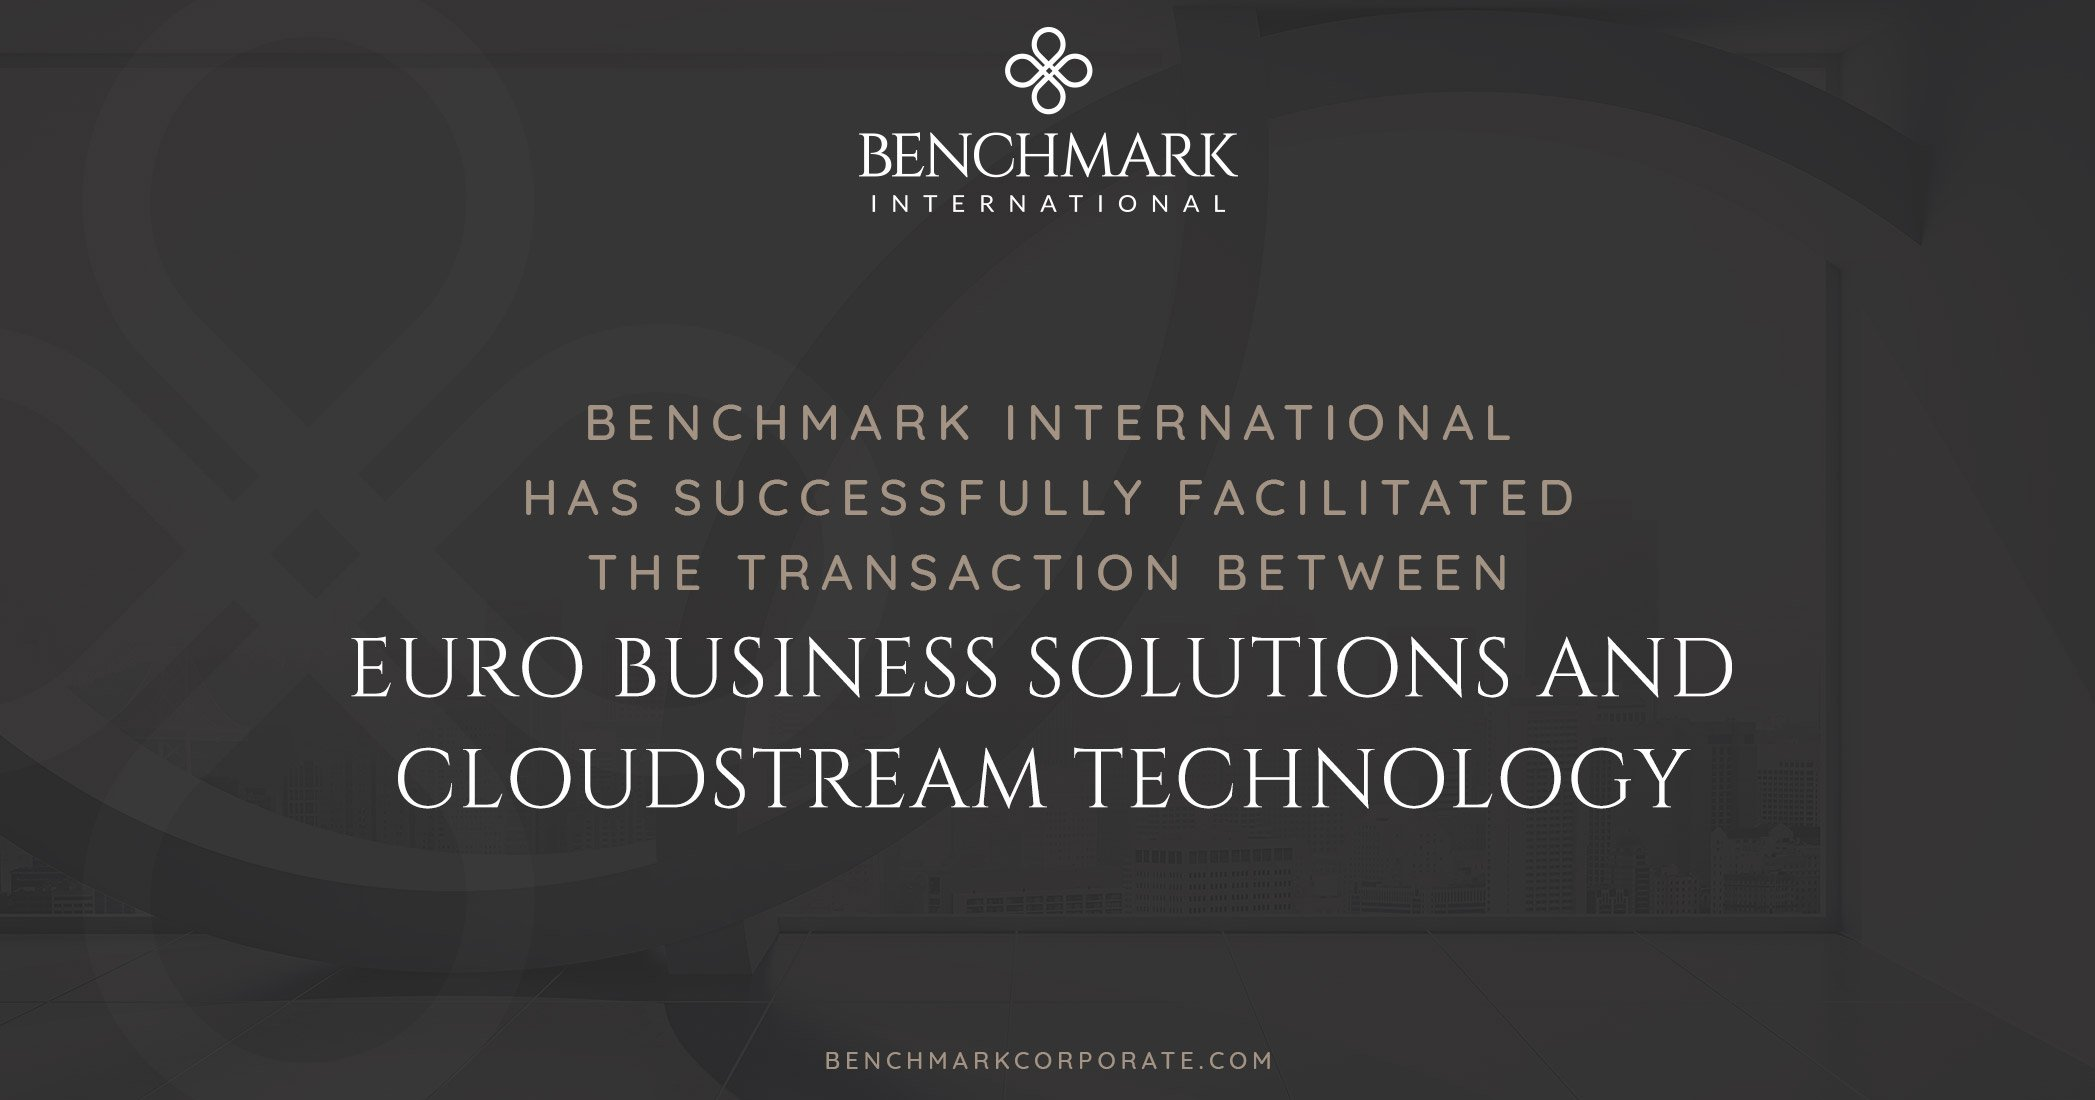 Benchmark International has Successfully Facilitated the Transaction Between Euro Business Solutions and Cloudstream Technology